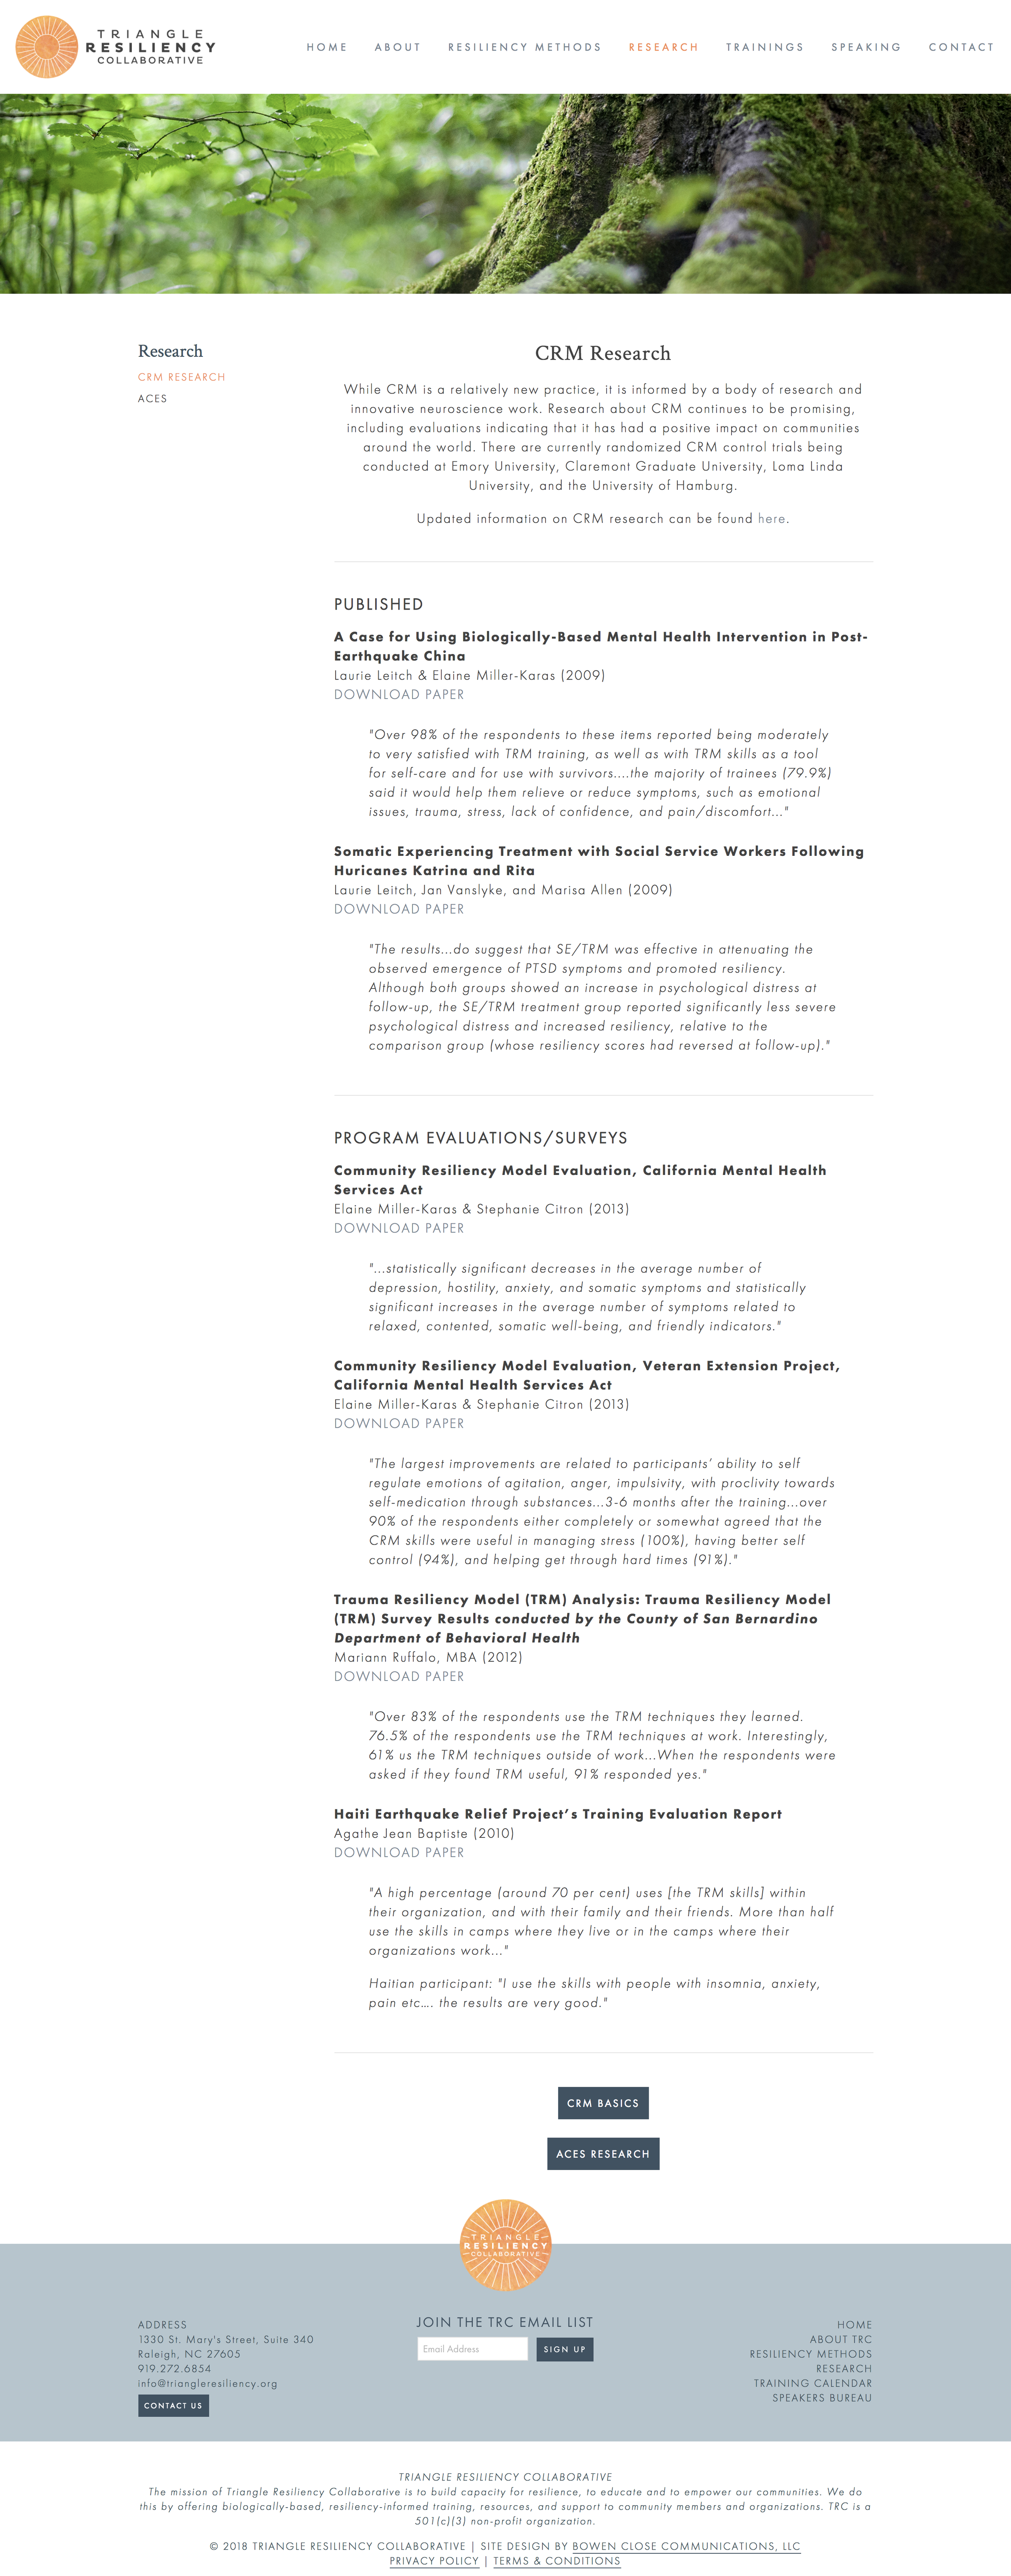 CRM Research — Triangle Resiliency Collaborative.png